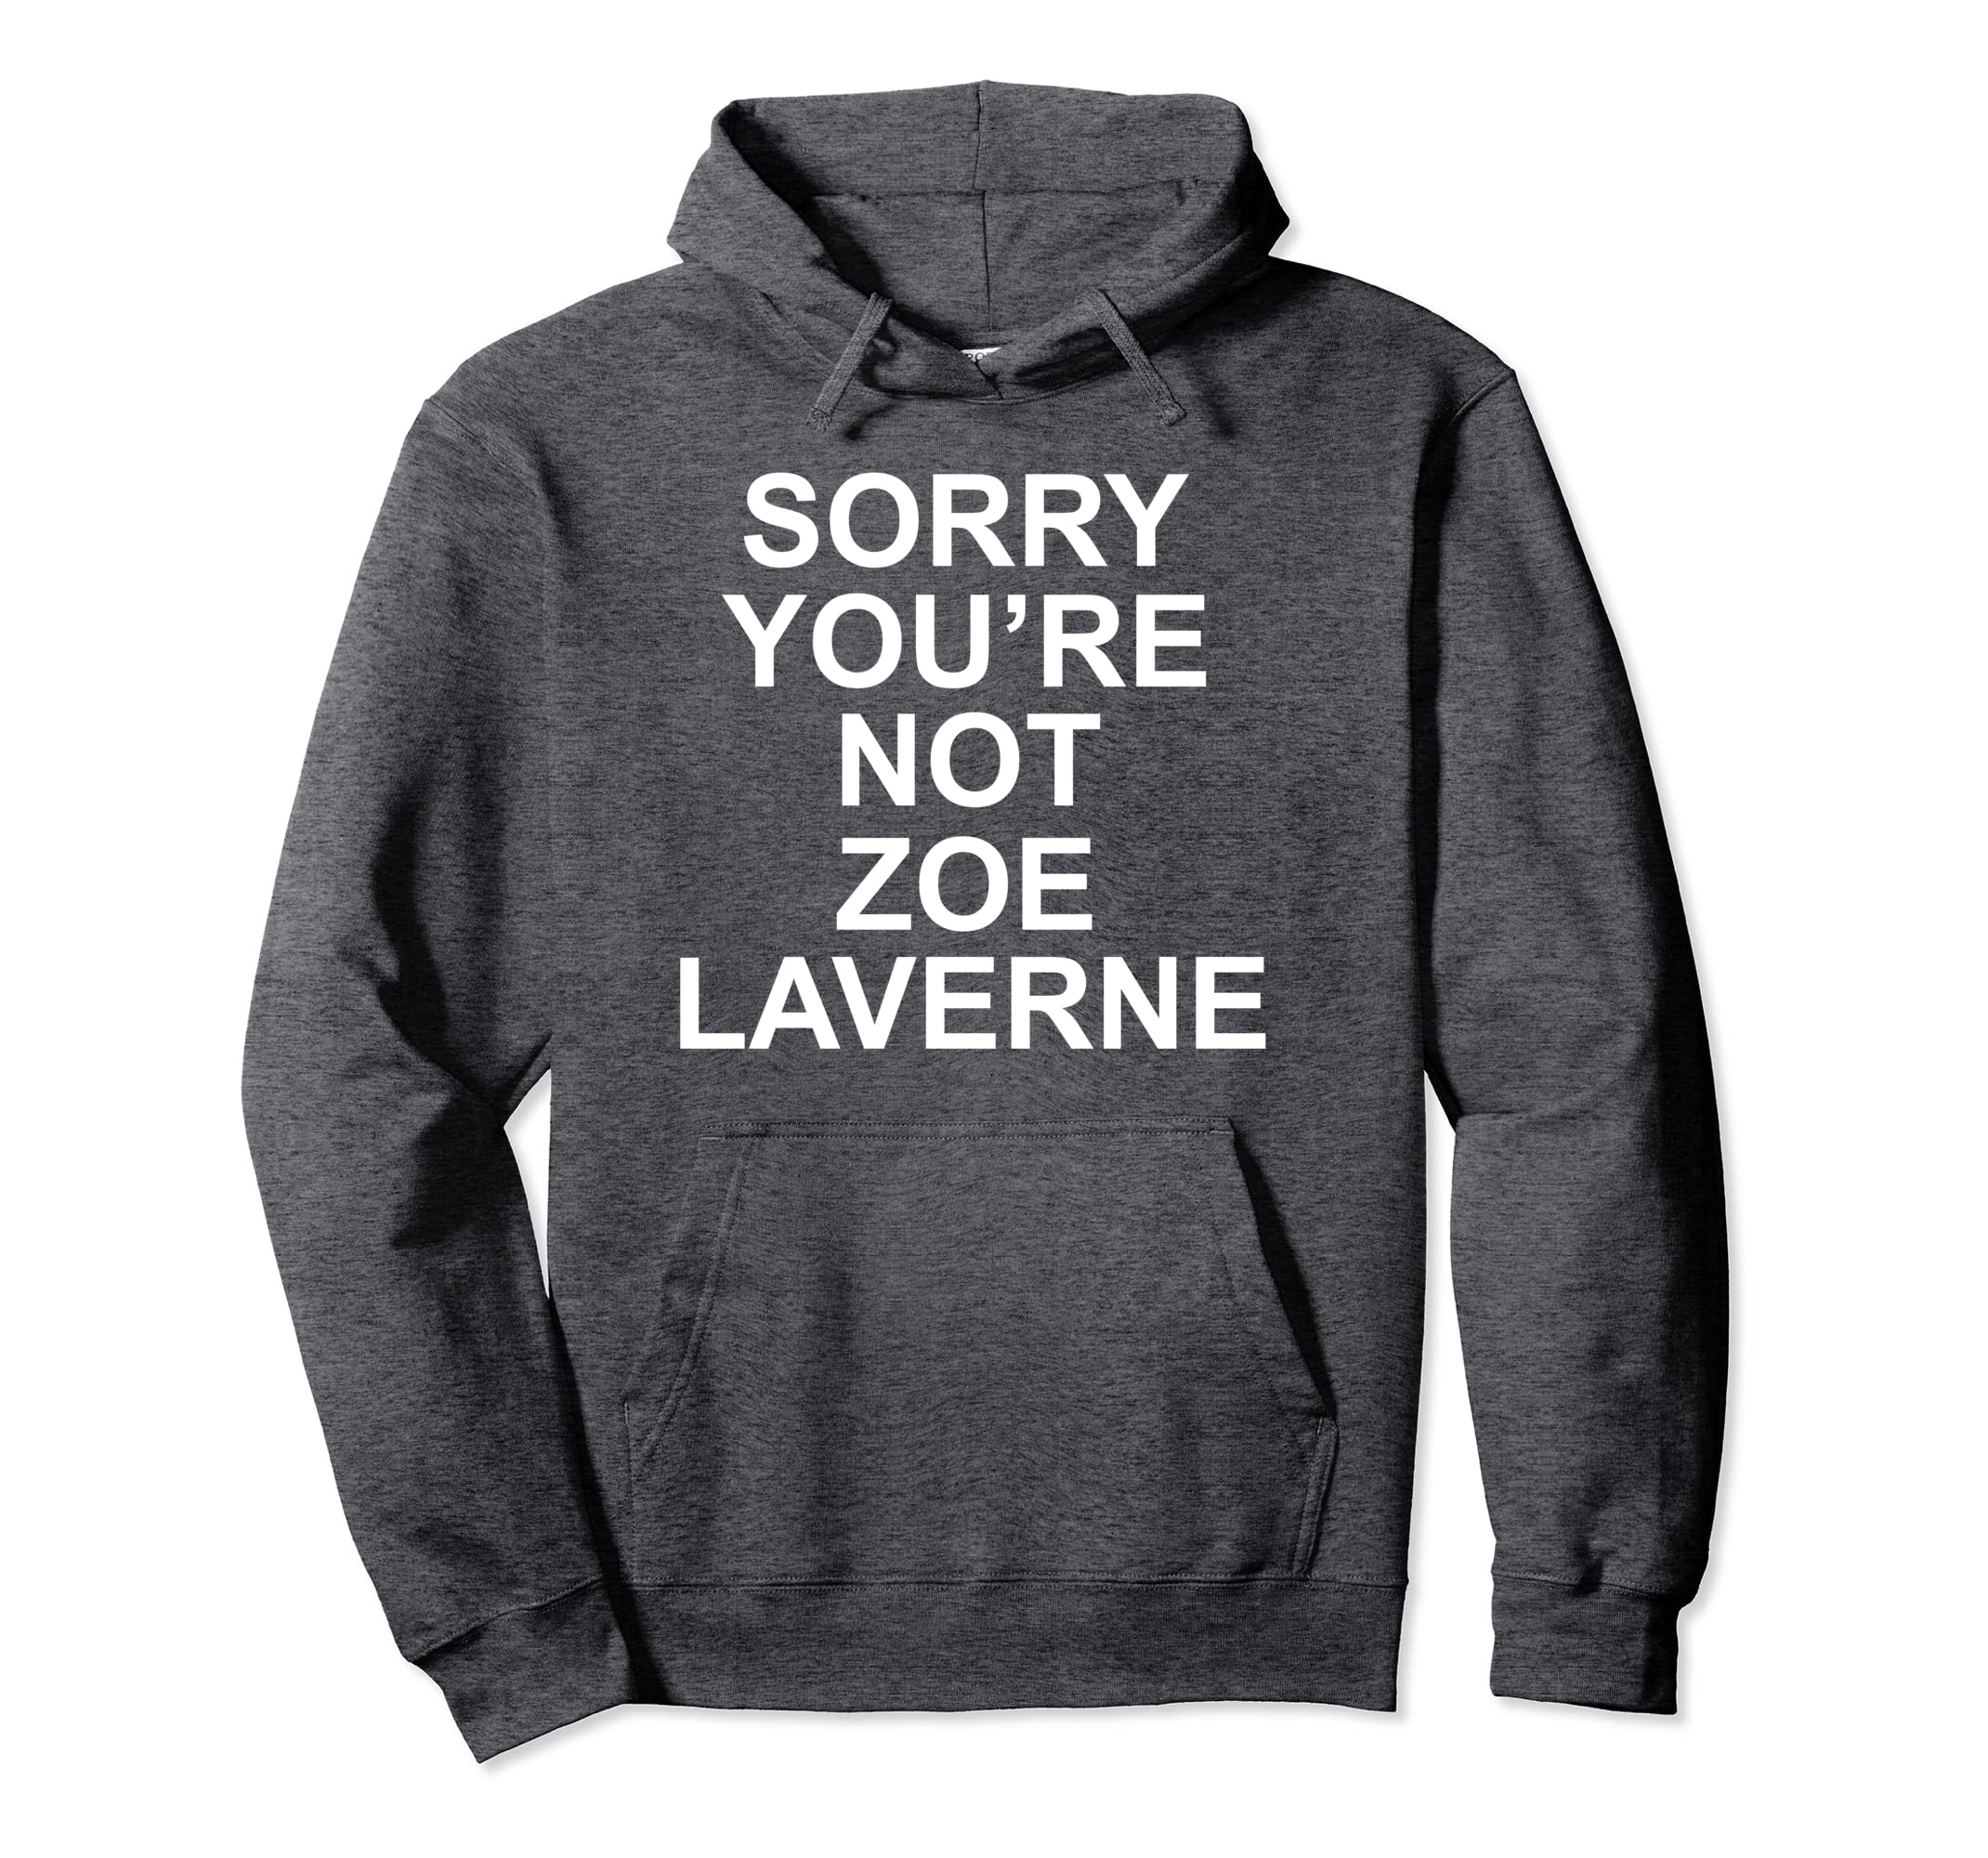 Amazon Com Sorry You Re Not Zoe Laverne Hoodie Clothing